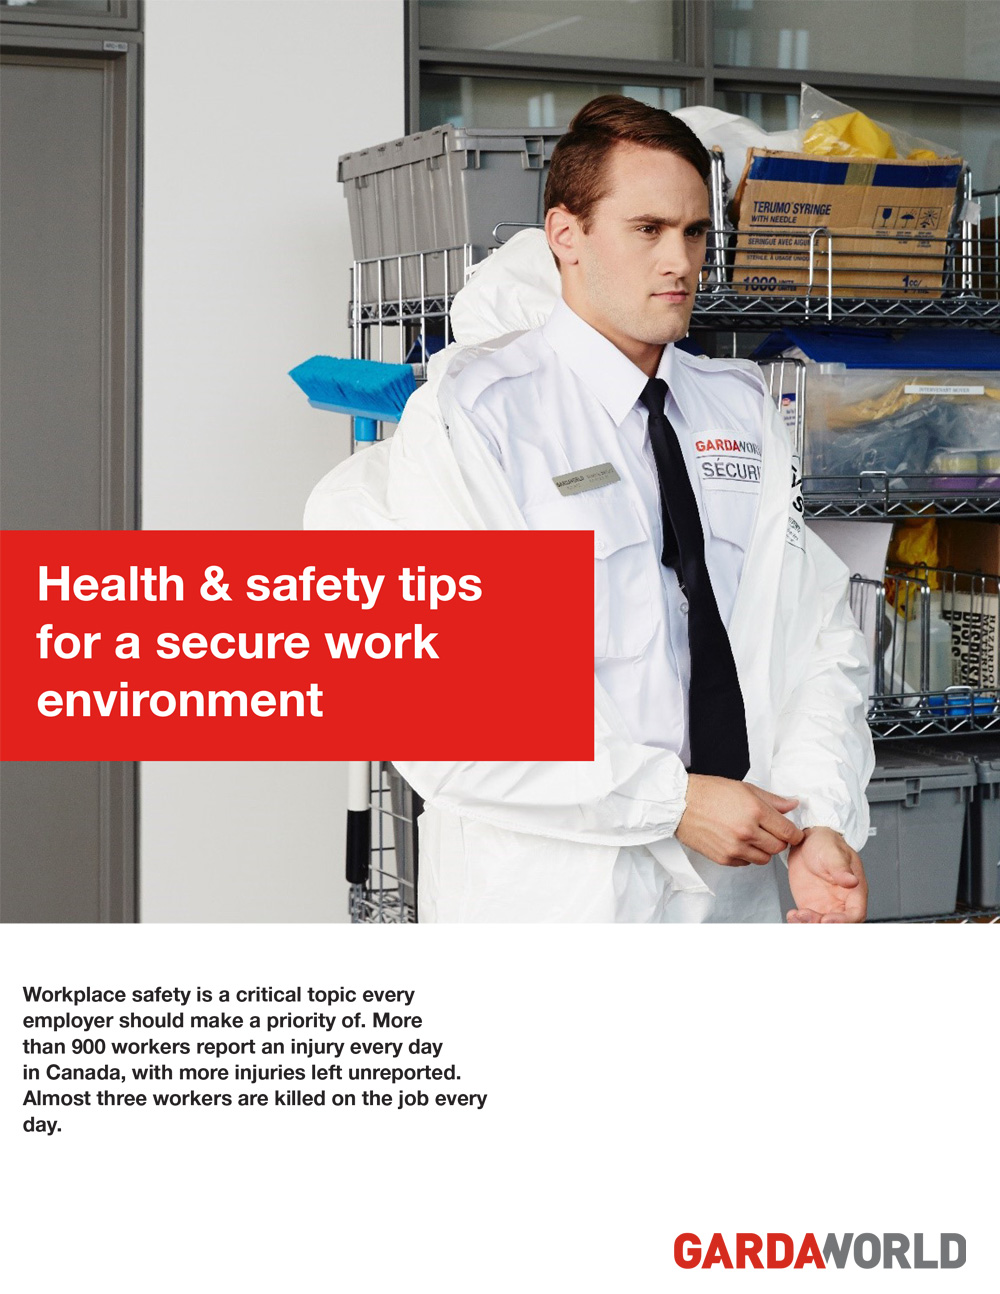 Health and safety tips for a secure work environment